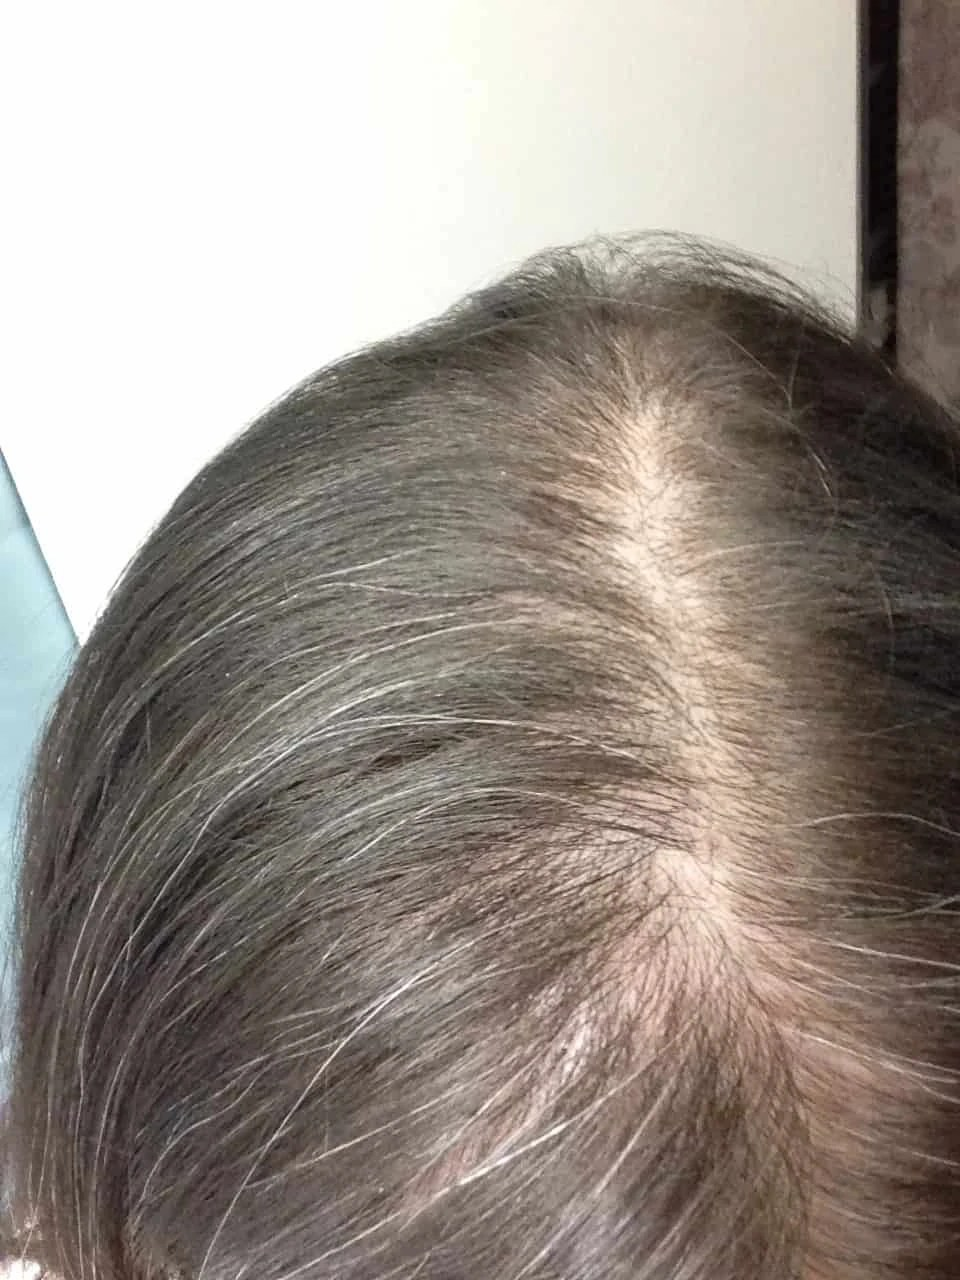 This was my hair in 2014 prior to my diagnosis with an autoimmune disease. I can see the hair loss pattern now, but at the time I didn't know what to look for! | via The Spirited Violet